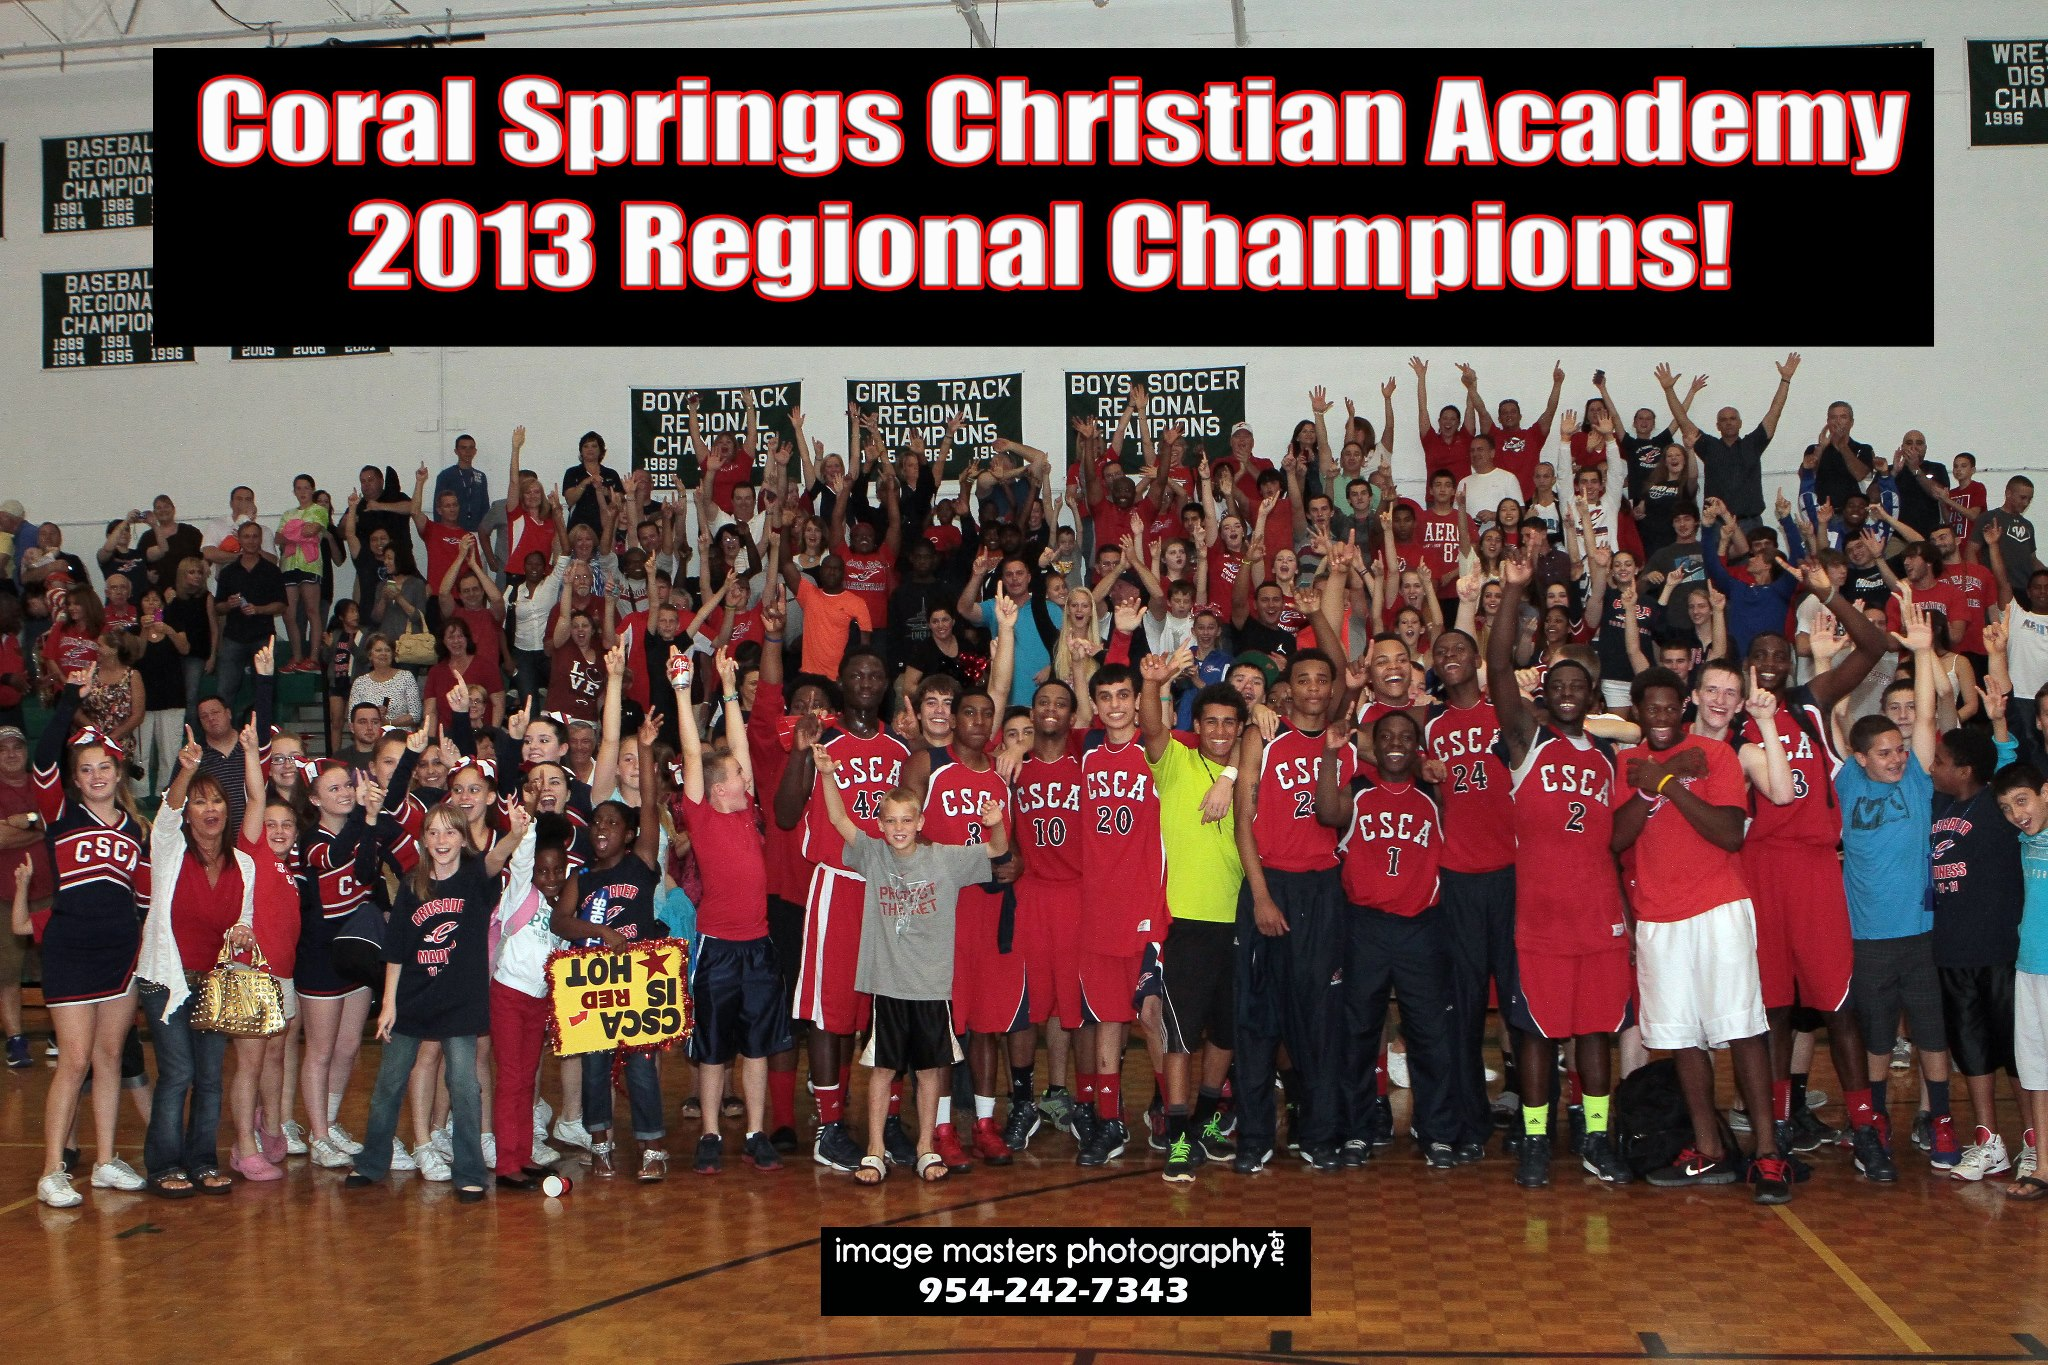 Athletics_Photo_2012_2013_Boys_Basketball_Varsity_Regional_Champions_With_Banner